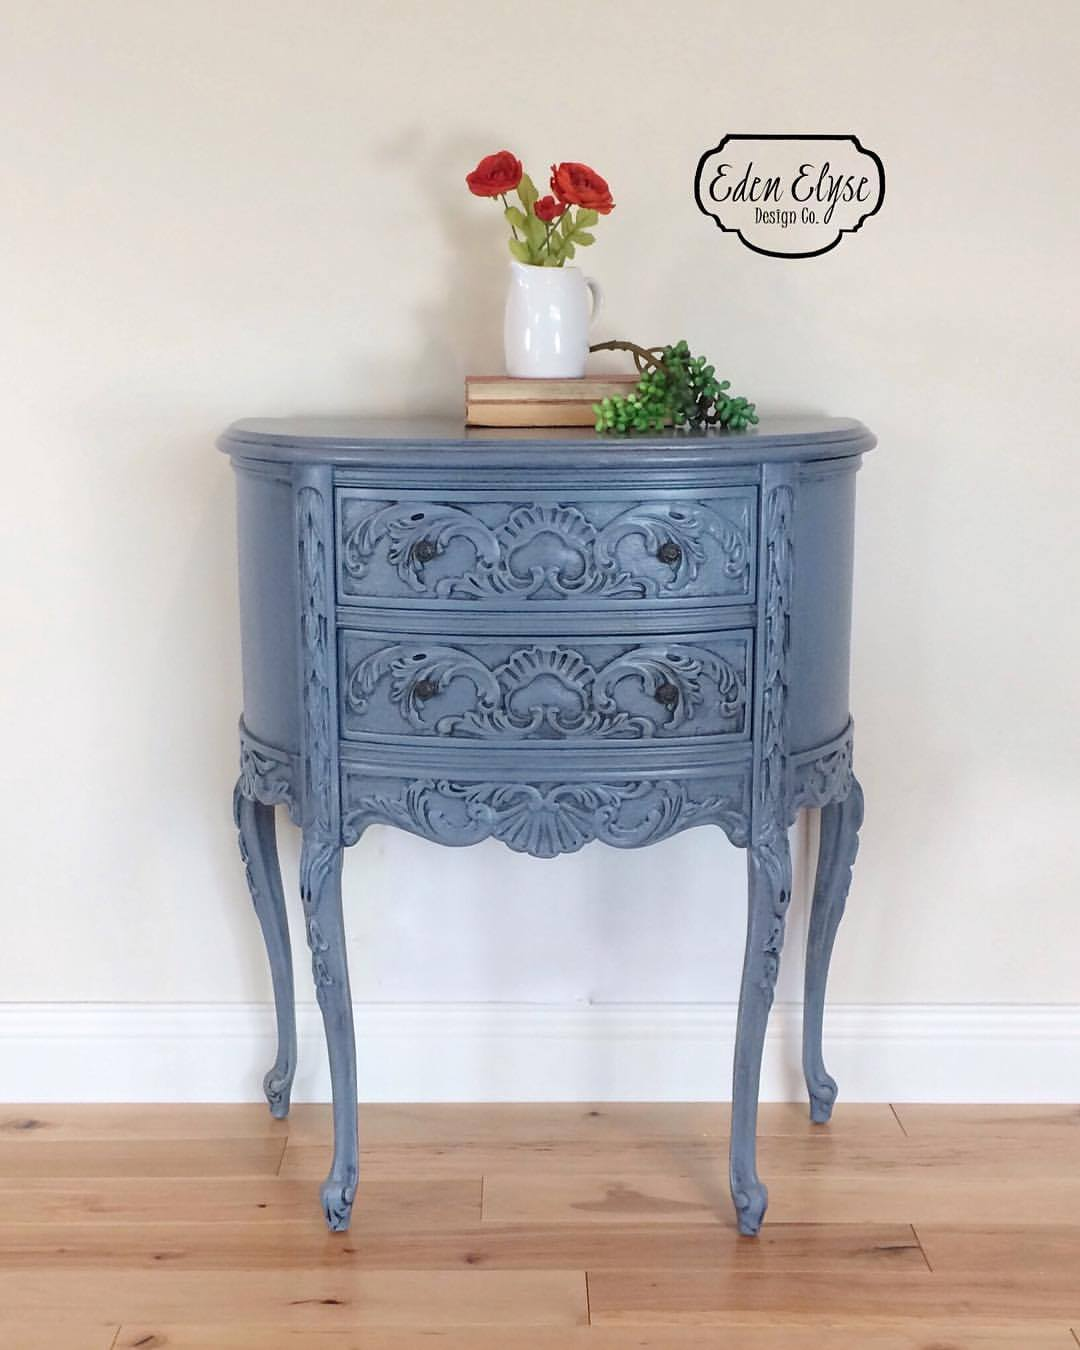 stillwater blue accent table general finishes design center scd chalk style paint erin eden elyse pitch black glaze effects high performance topcoat teal laminated tablecloth